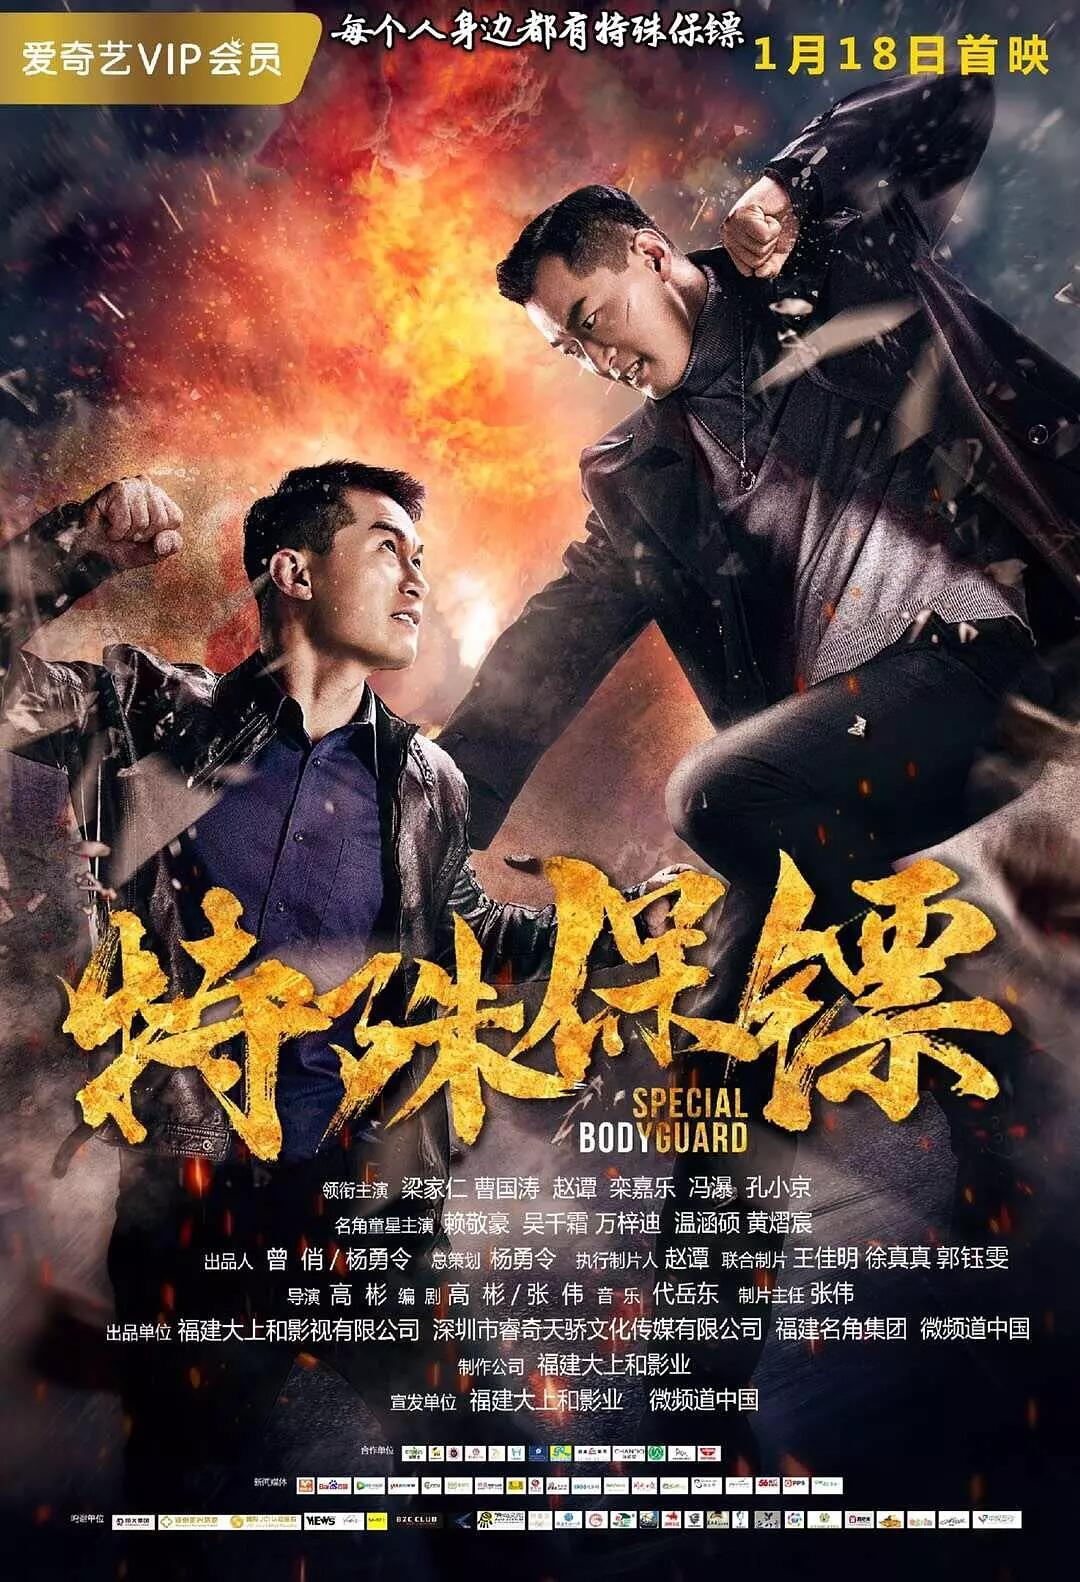 Special Bodybuard (2019) Chinese 250MB HDRip 480p